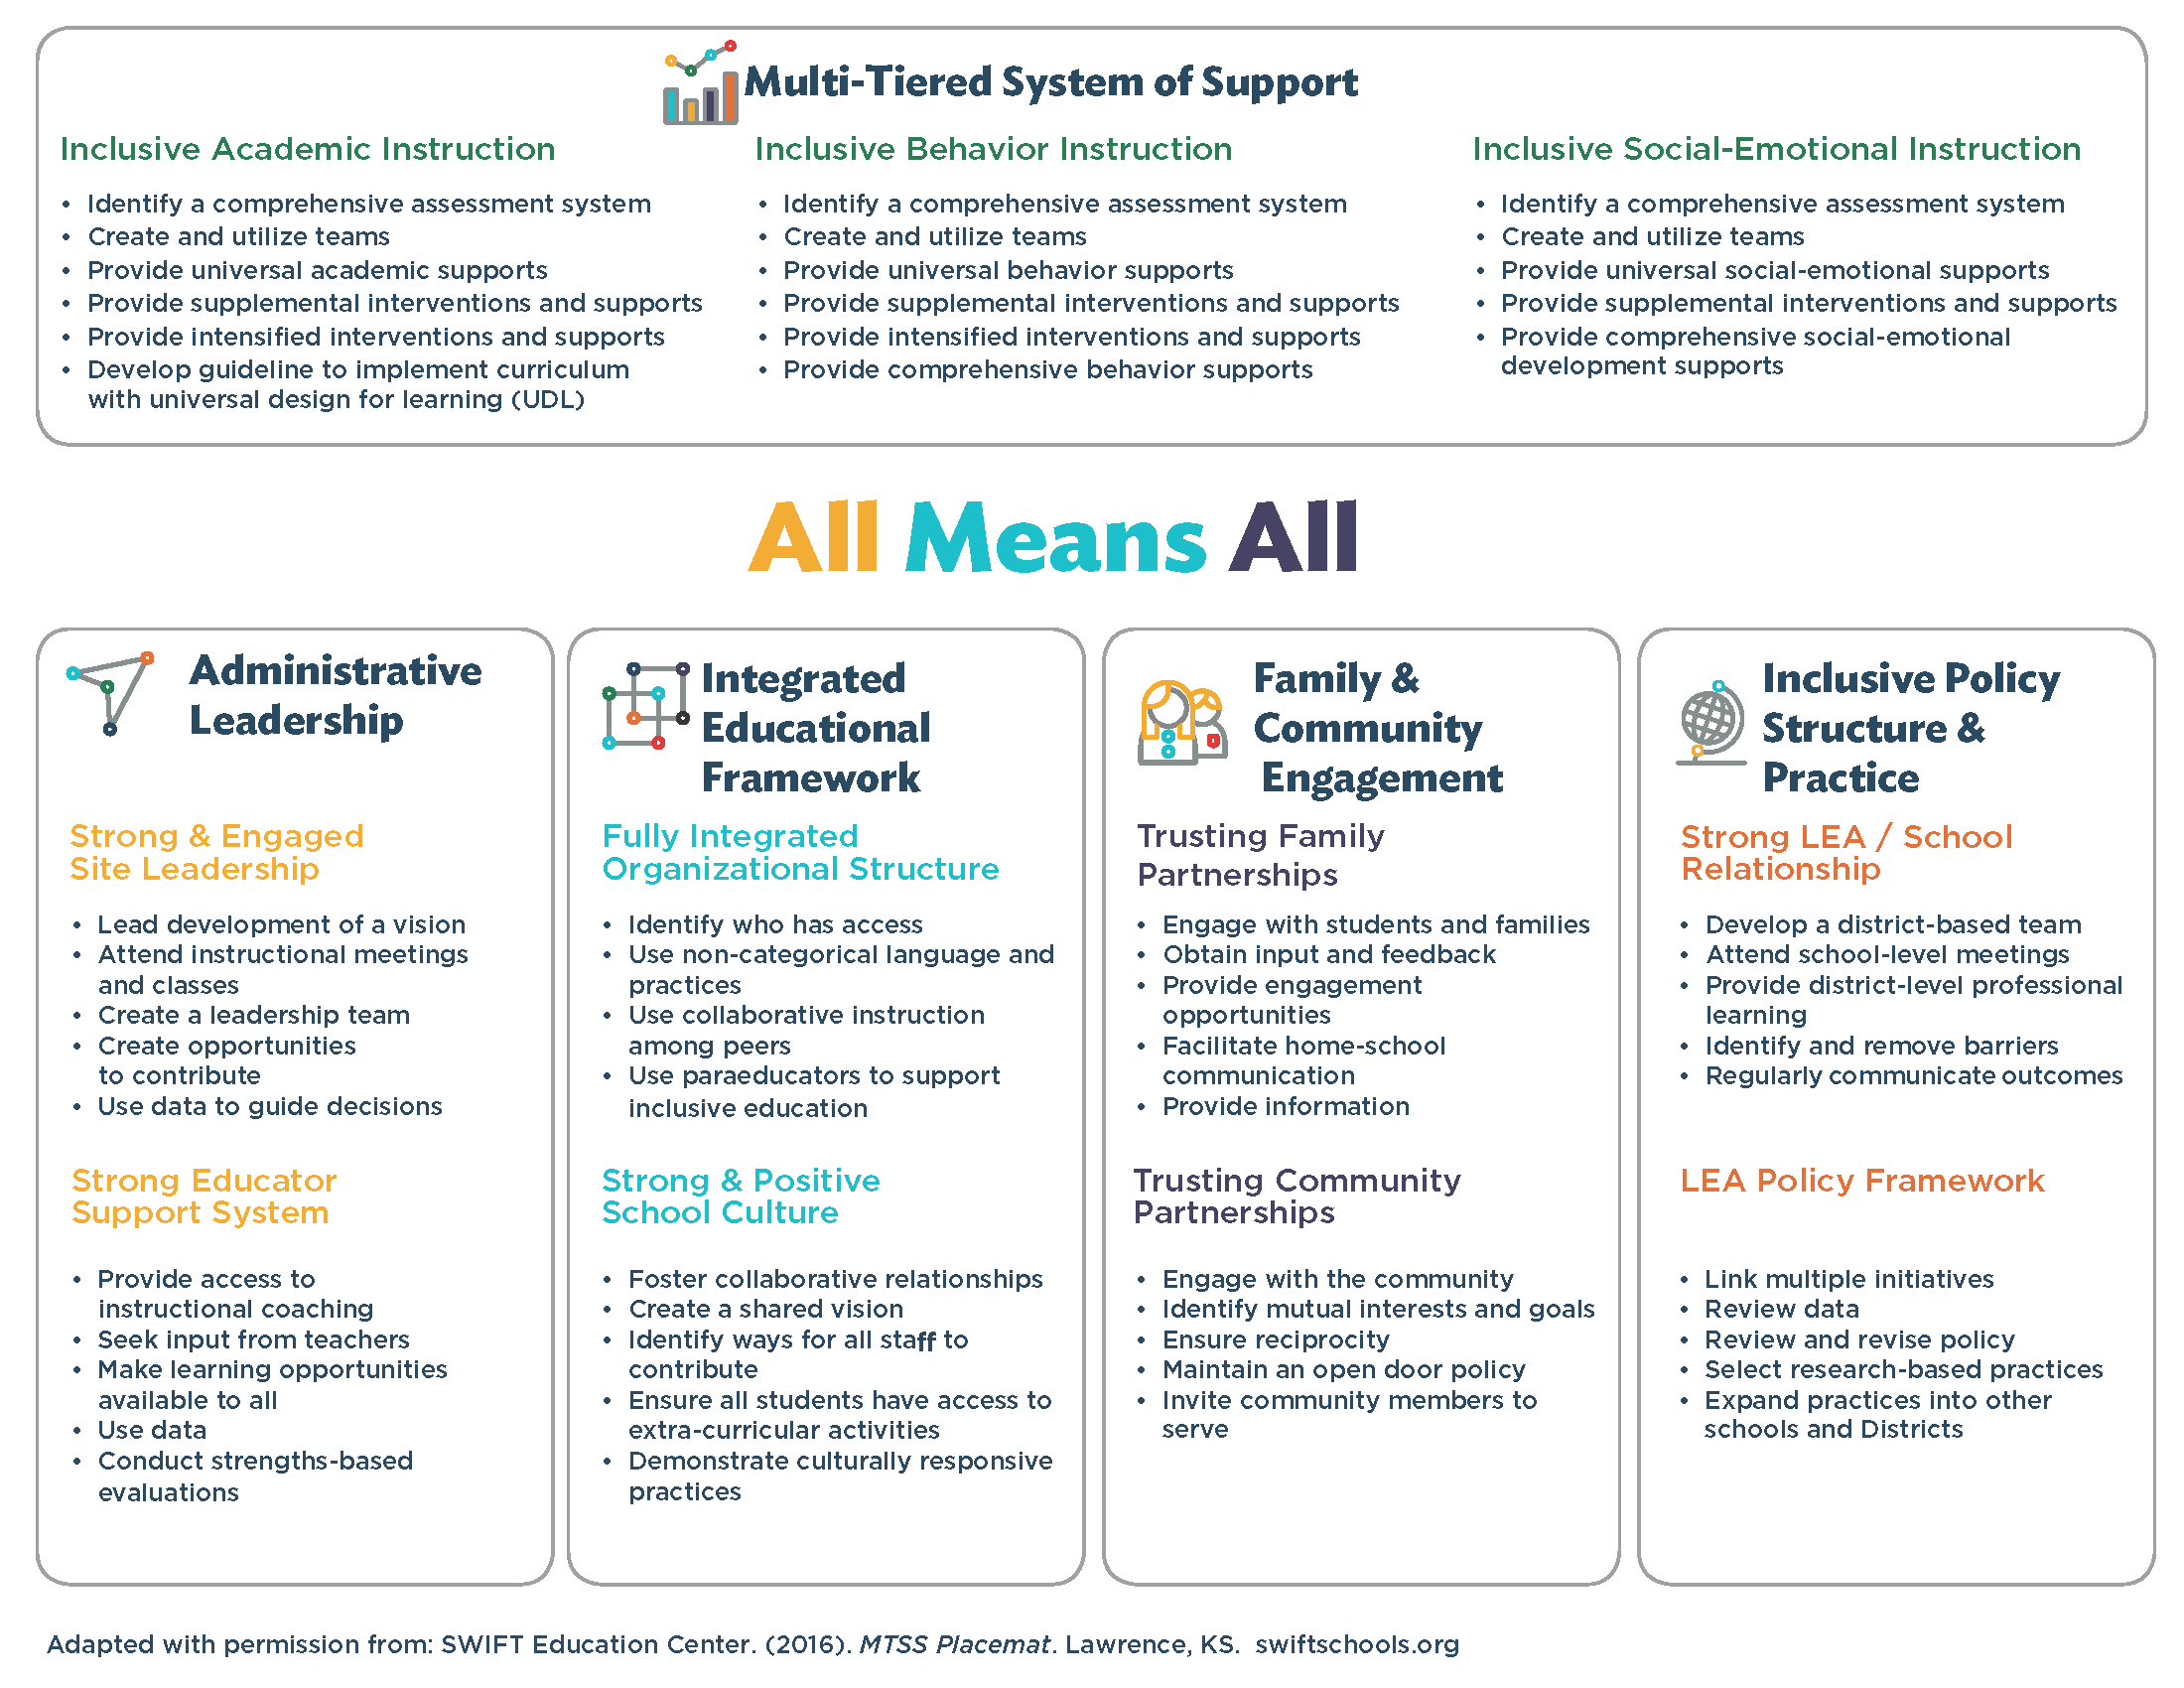 Copy of MTSS Placemat adapted with permission.png